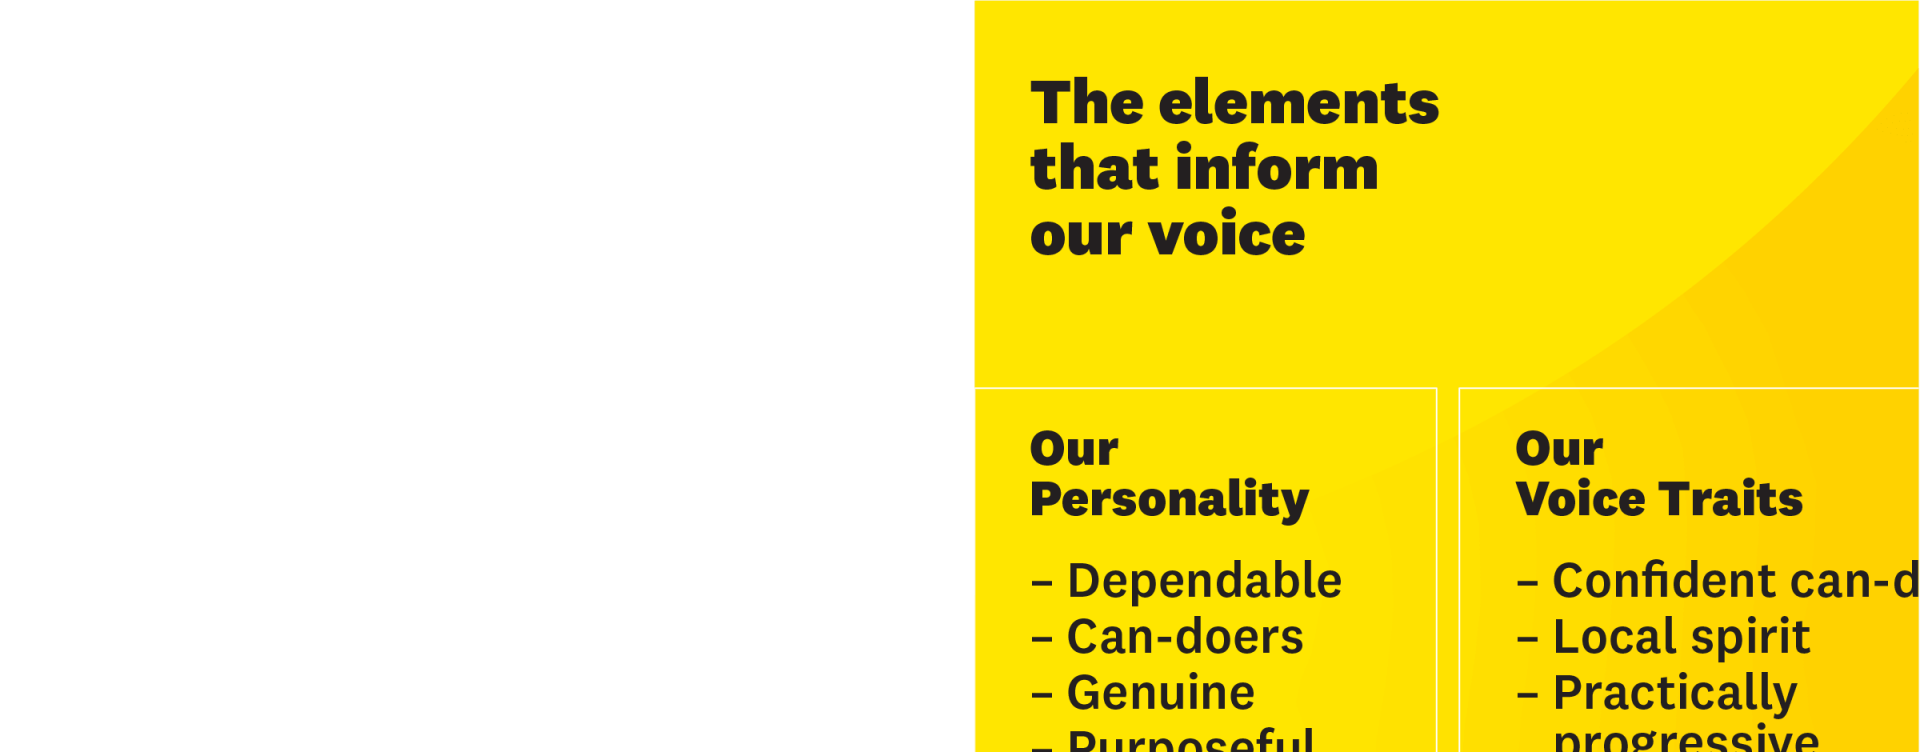 Image showing RAA's tone of voice traits and personality